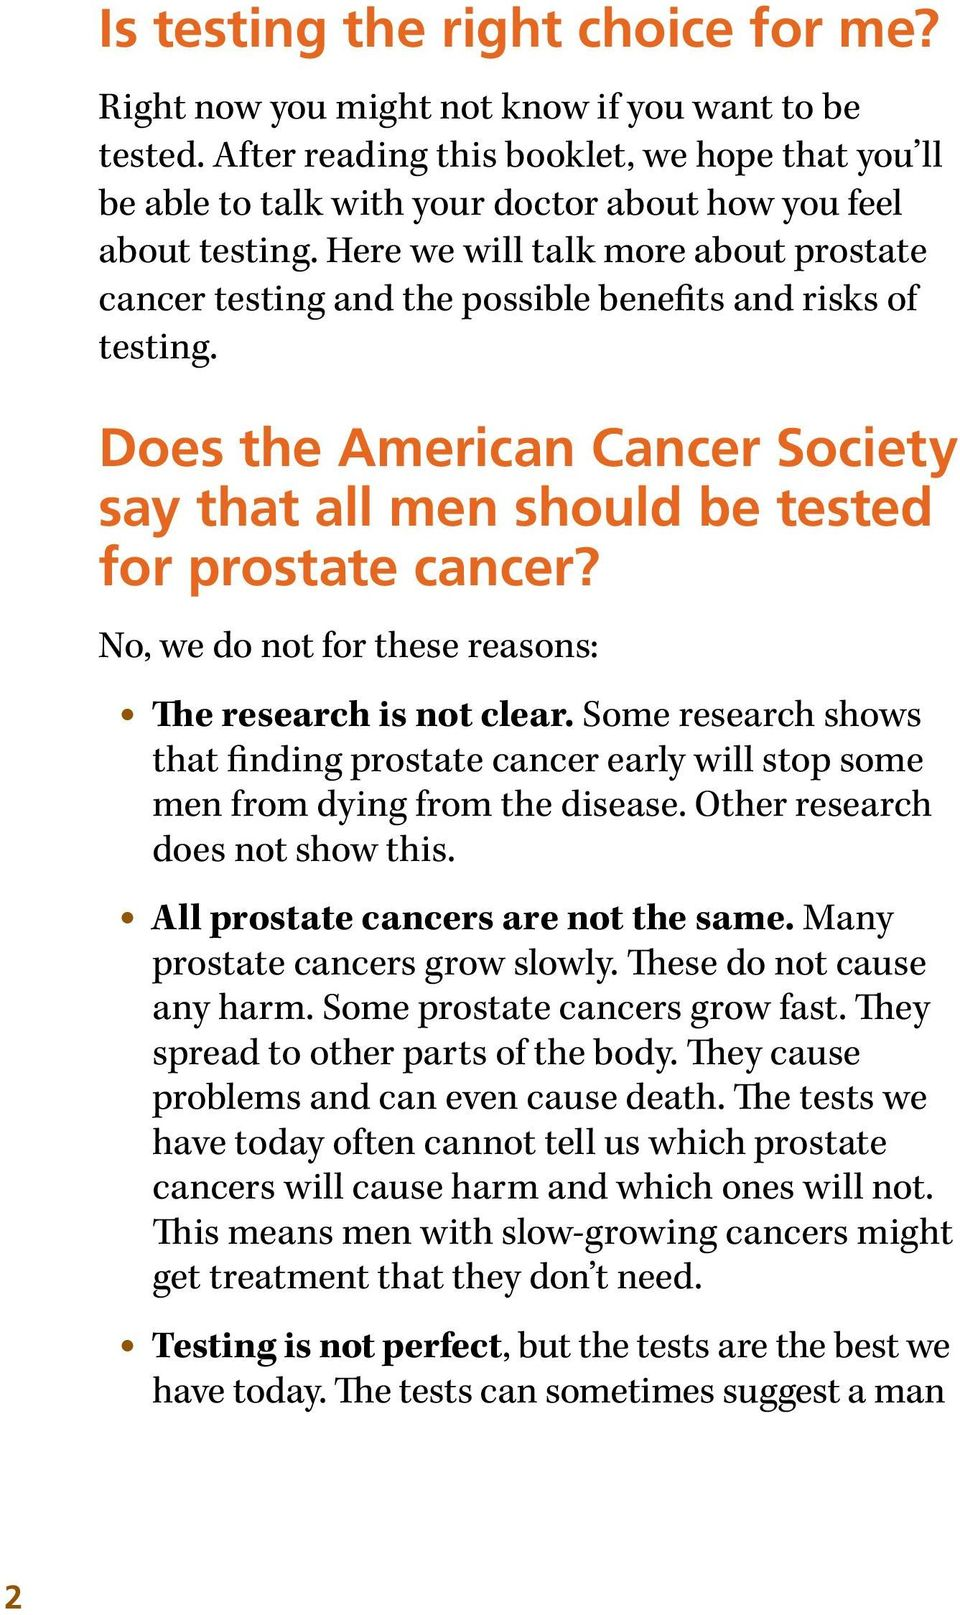 Here we will talk more about prostate cancer testing and the possible benefits and risks of testing. Does the American Cancer Society say that all men should be tested for prostate cancer?